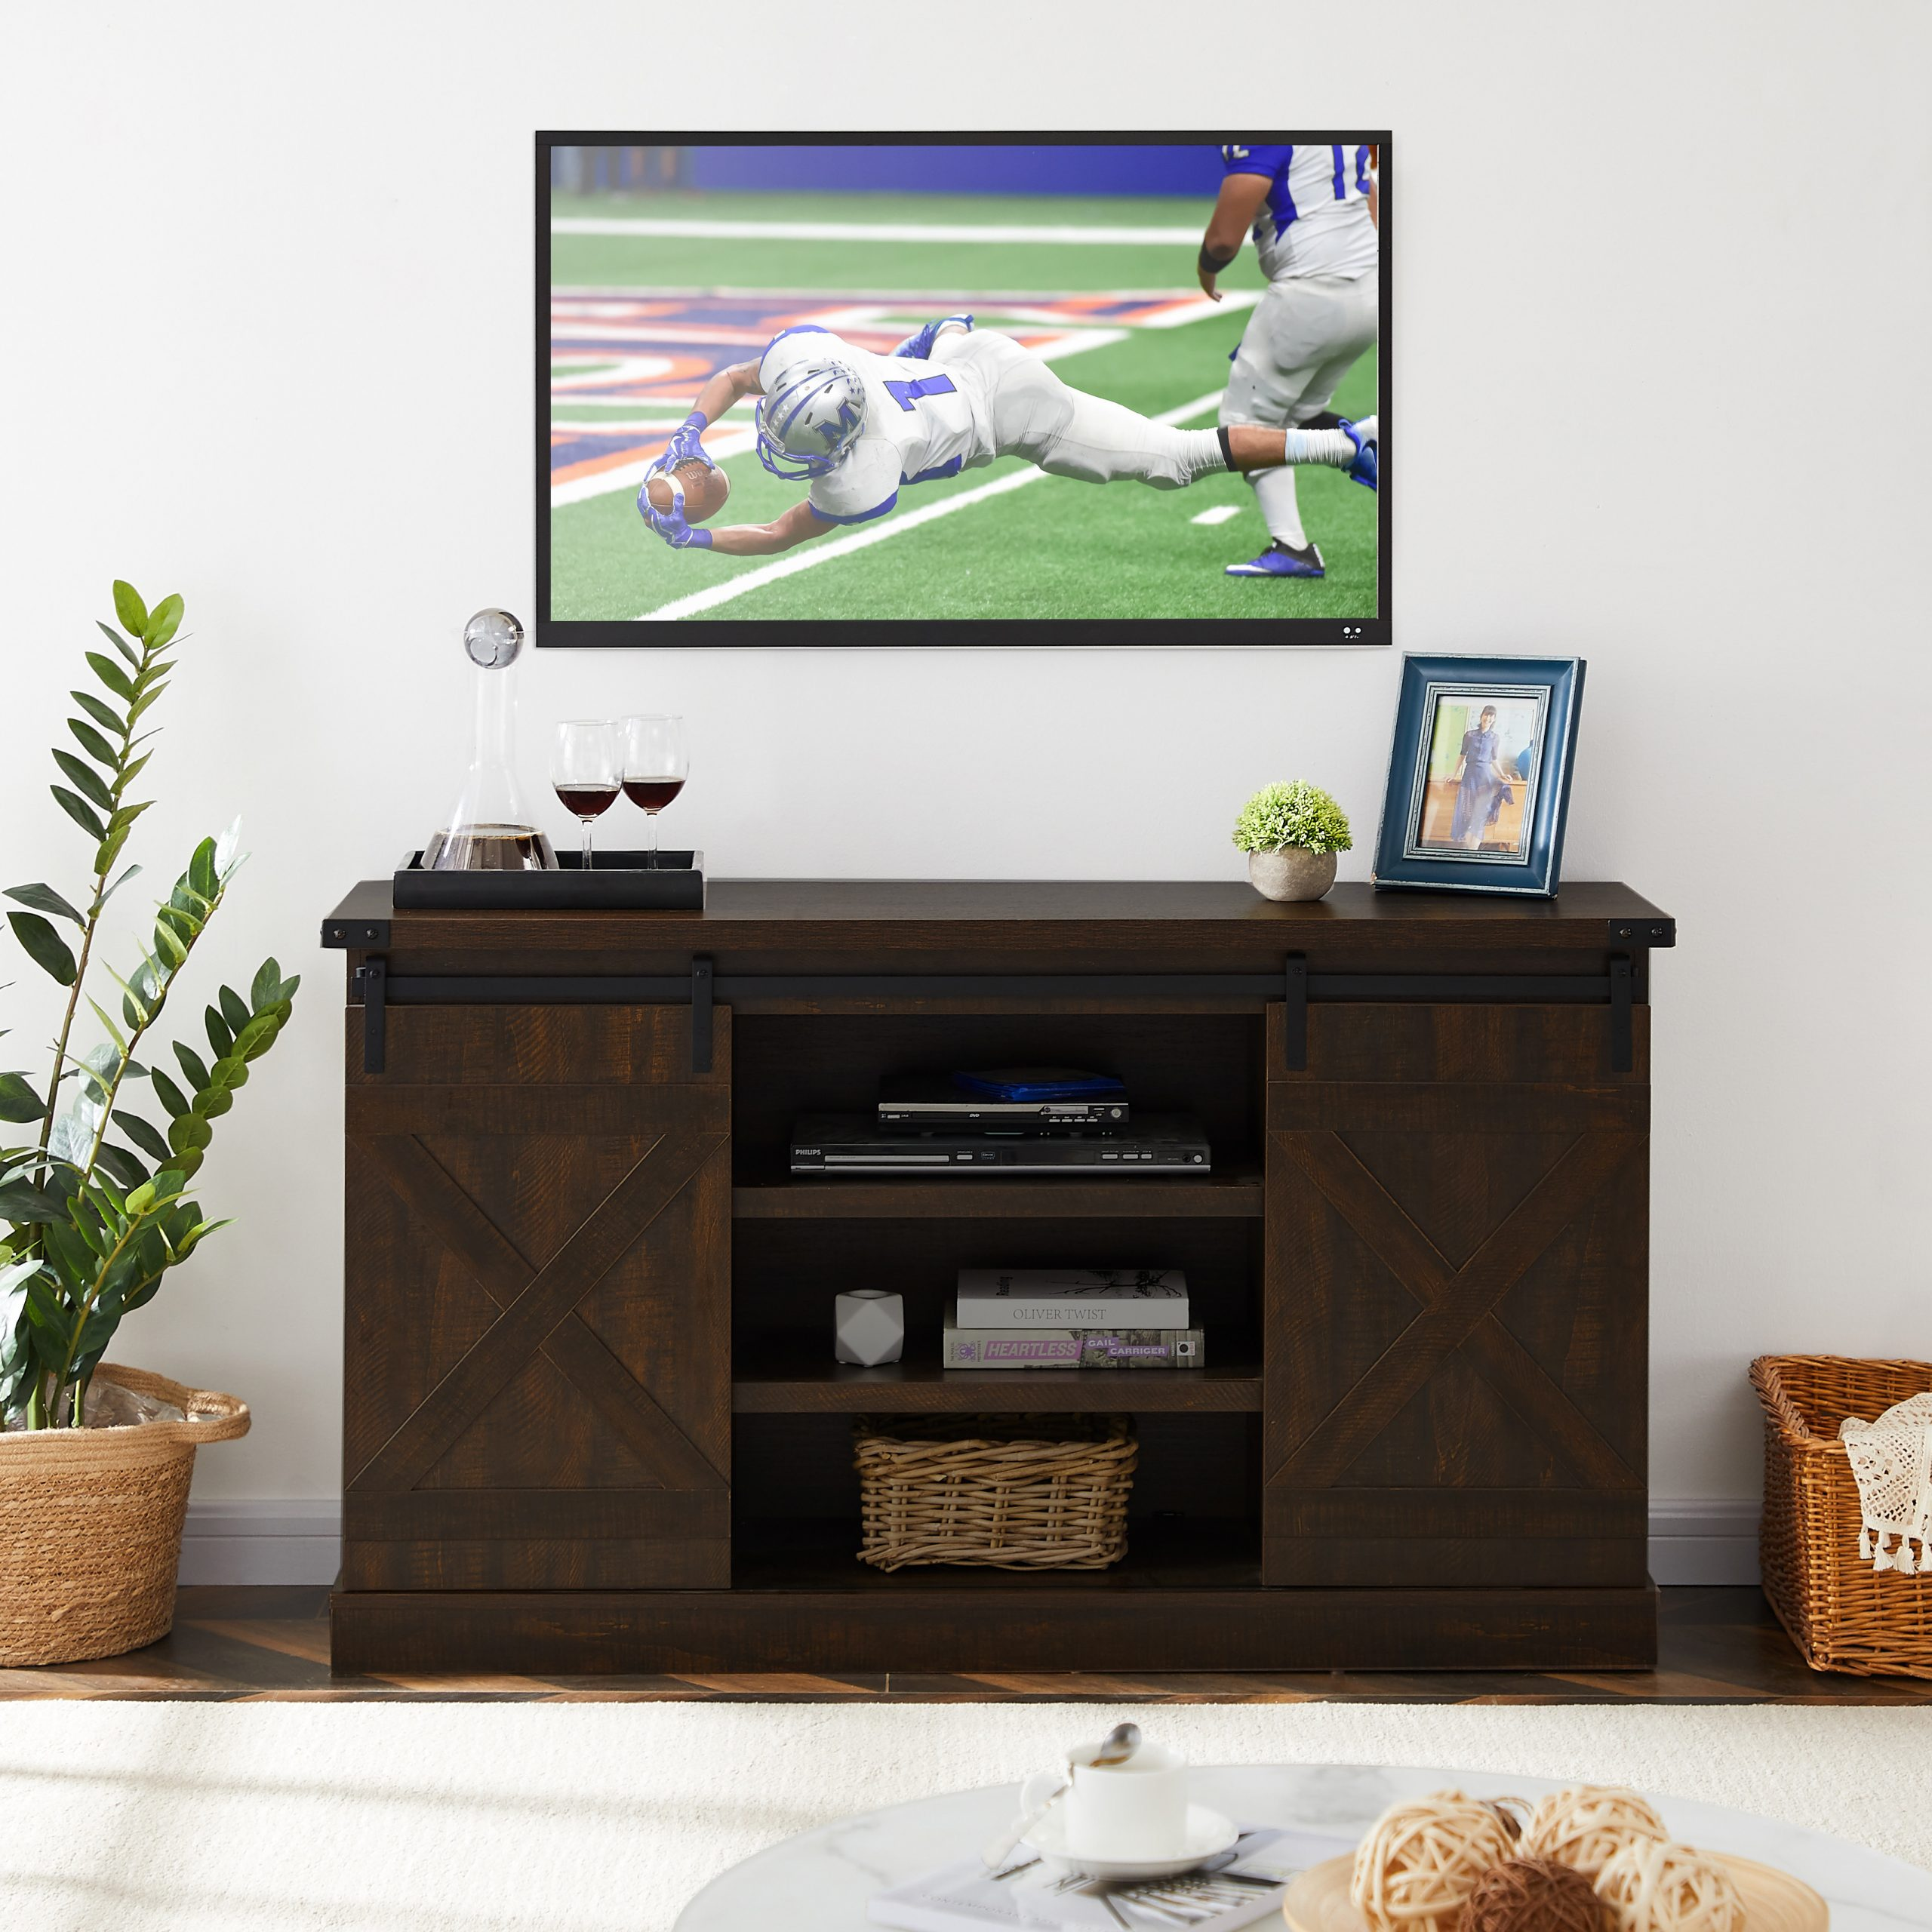 Tv Stand For 40 65 Inch Tv, Modern Farmhouse Tv Stand With Throughout Wooden Tv Stands With Doors (View 1 of 15)